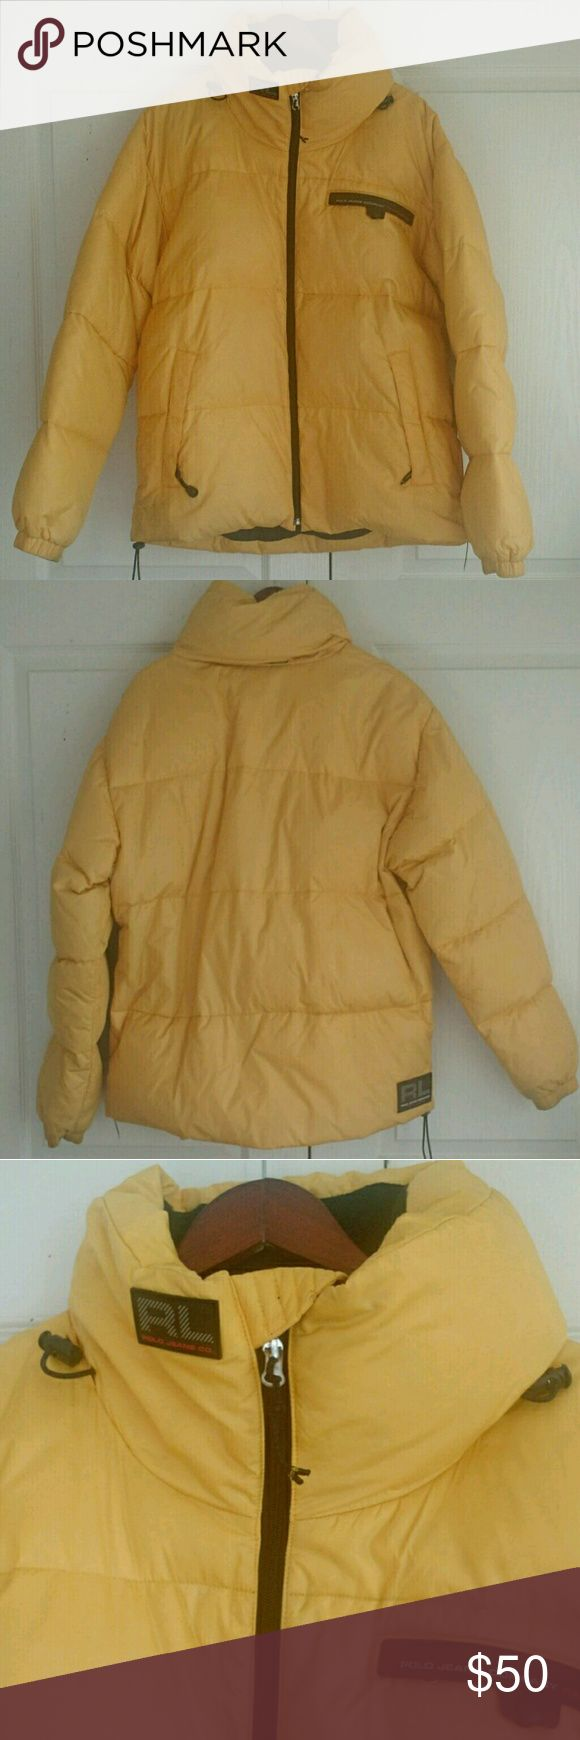 """🌹WARM🌹 Polo Jacket Size L Awesome down jacket with plenty of zipped pockets and a hidden hat in the back. Zip front with adjustable ties at the waist and hood. Gently worn and in great condition. Machine washable! Super warm. Measures: 26"""" across chest, 29"""" shoulder to bottom  Shell: 100% Nylon  Lining: 100% Polyester Fill: 60% Down, 40% Waterfall feather Polo by Ralph Lauren Jackets & Coats Puffers"""